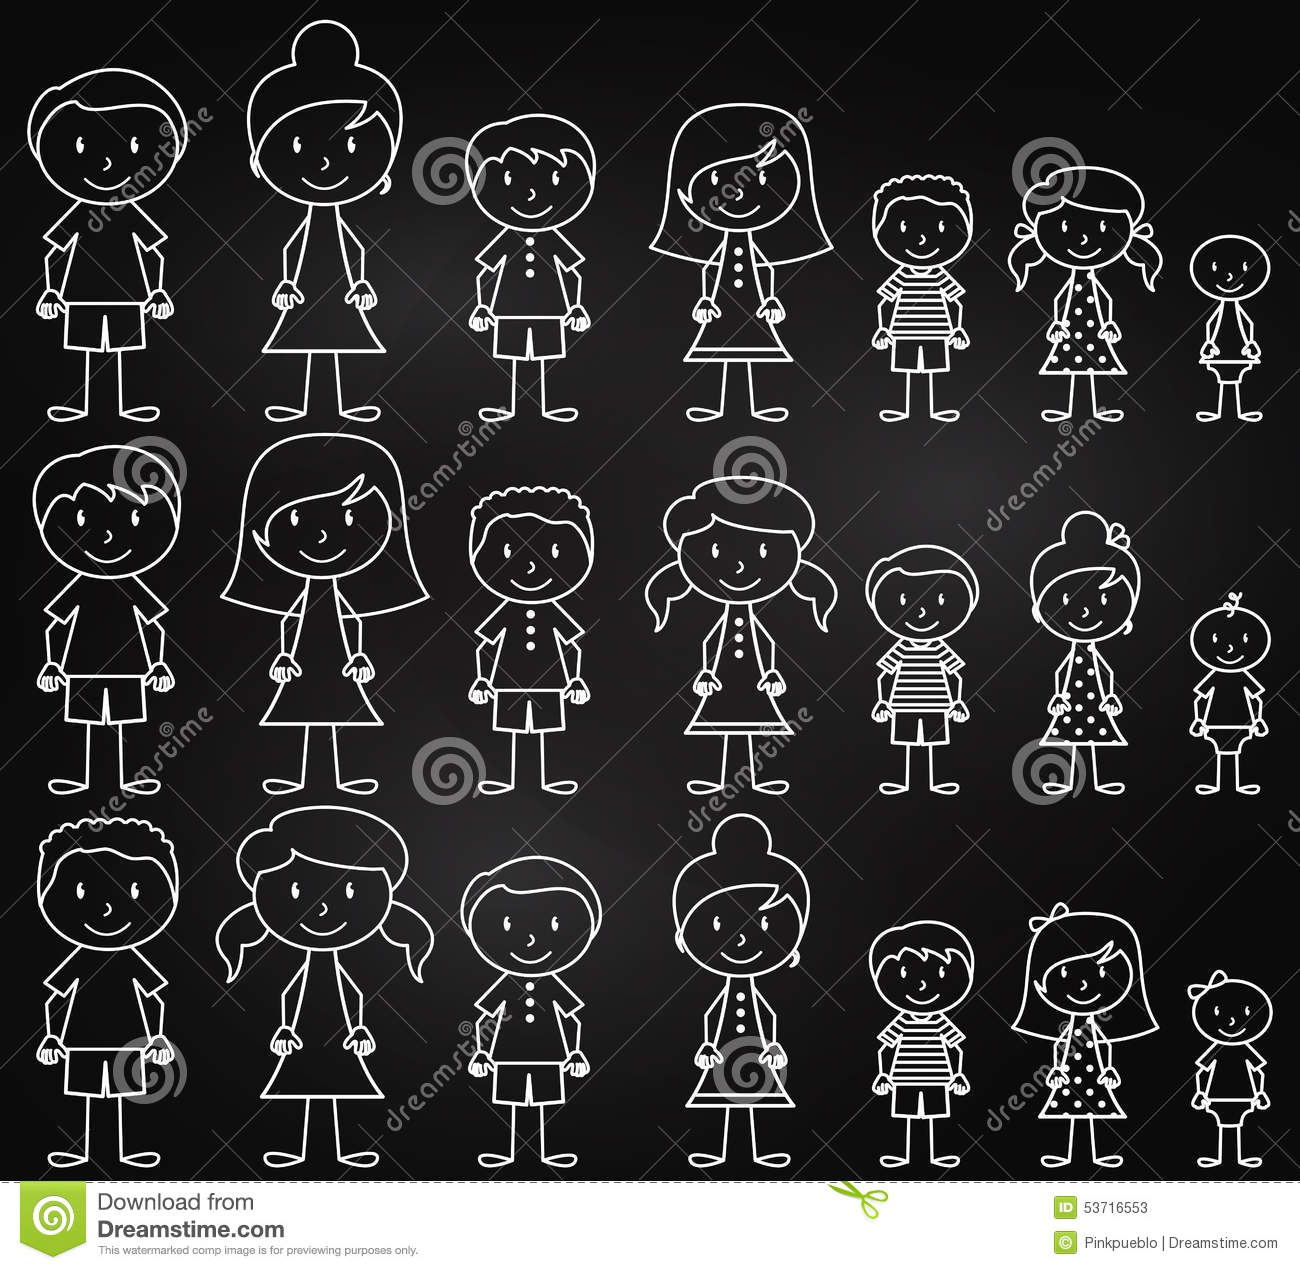 Set Of Cute And Diverse Chalkboard Stick People In Vector